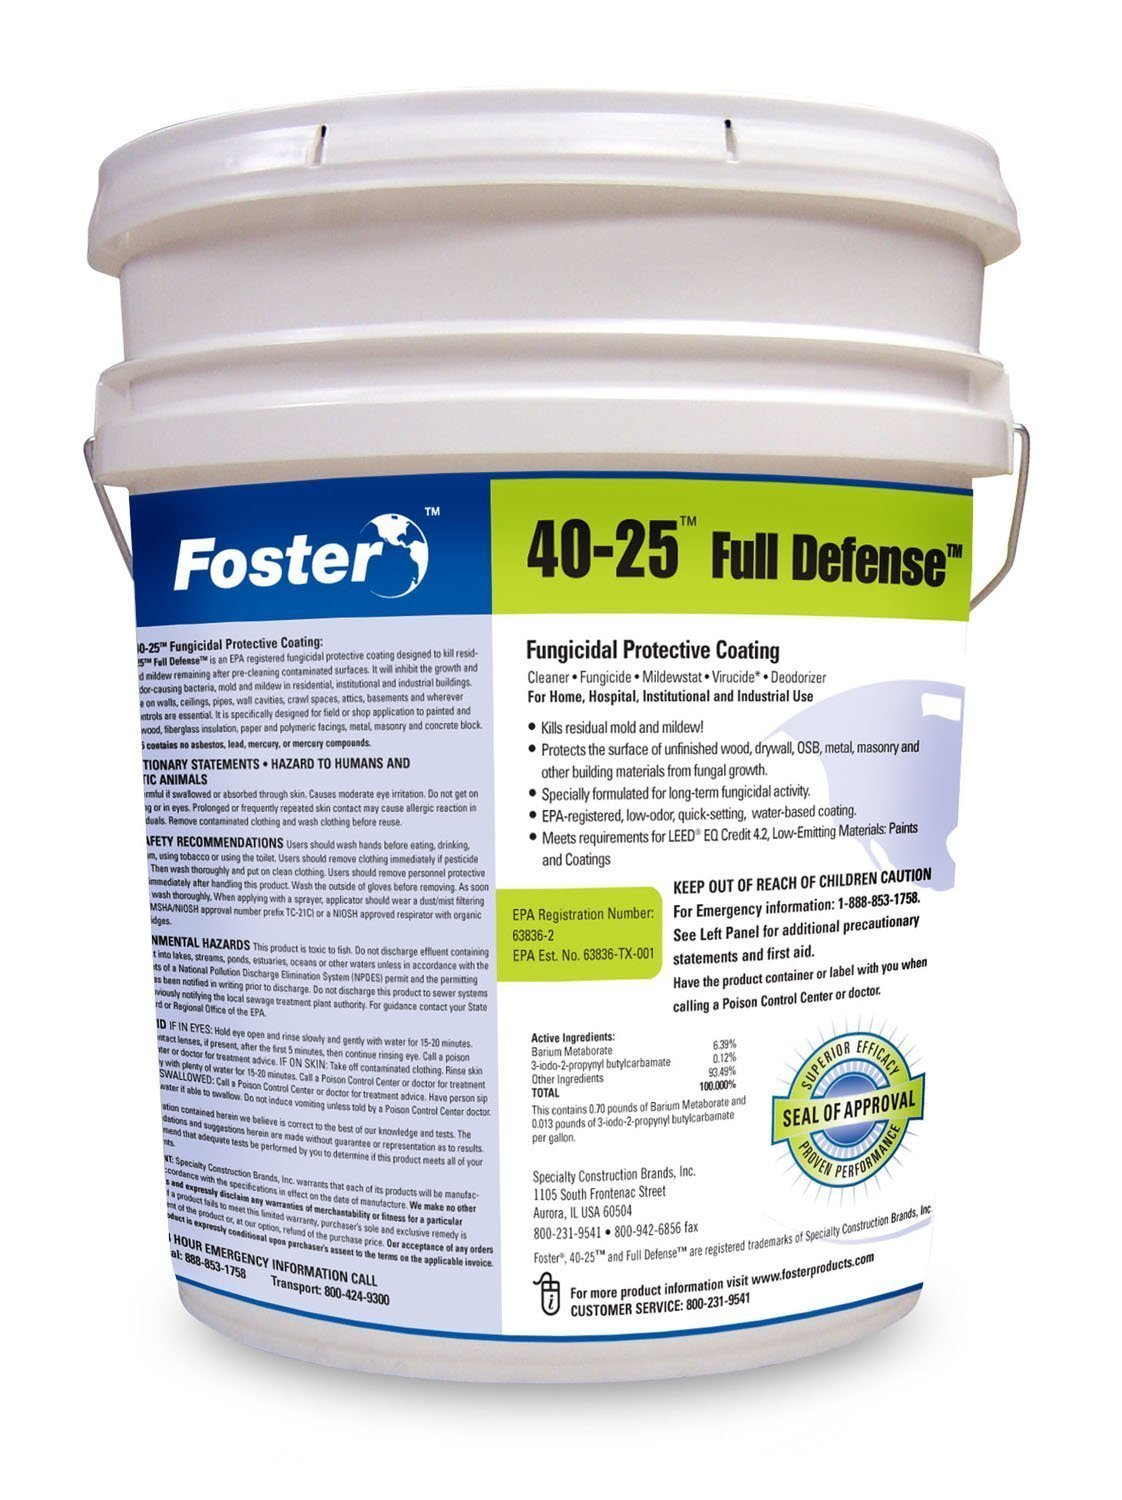 Foster Products - Full Defense - 40-25 - Fungicidal Protective Coating - Kills Residual Mold and Mildew Remaining After Pre-Cleaning Contaminated Surfaces - White - 5 Gallon Pail